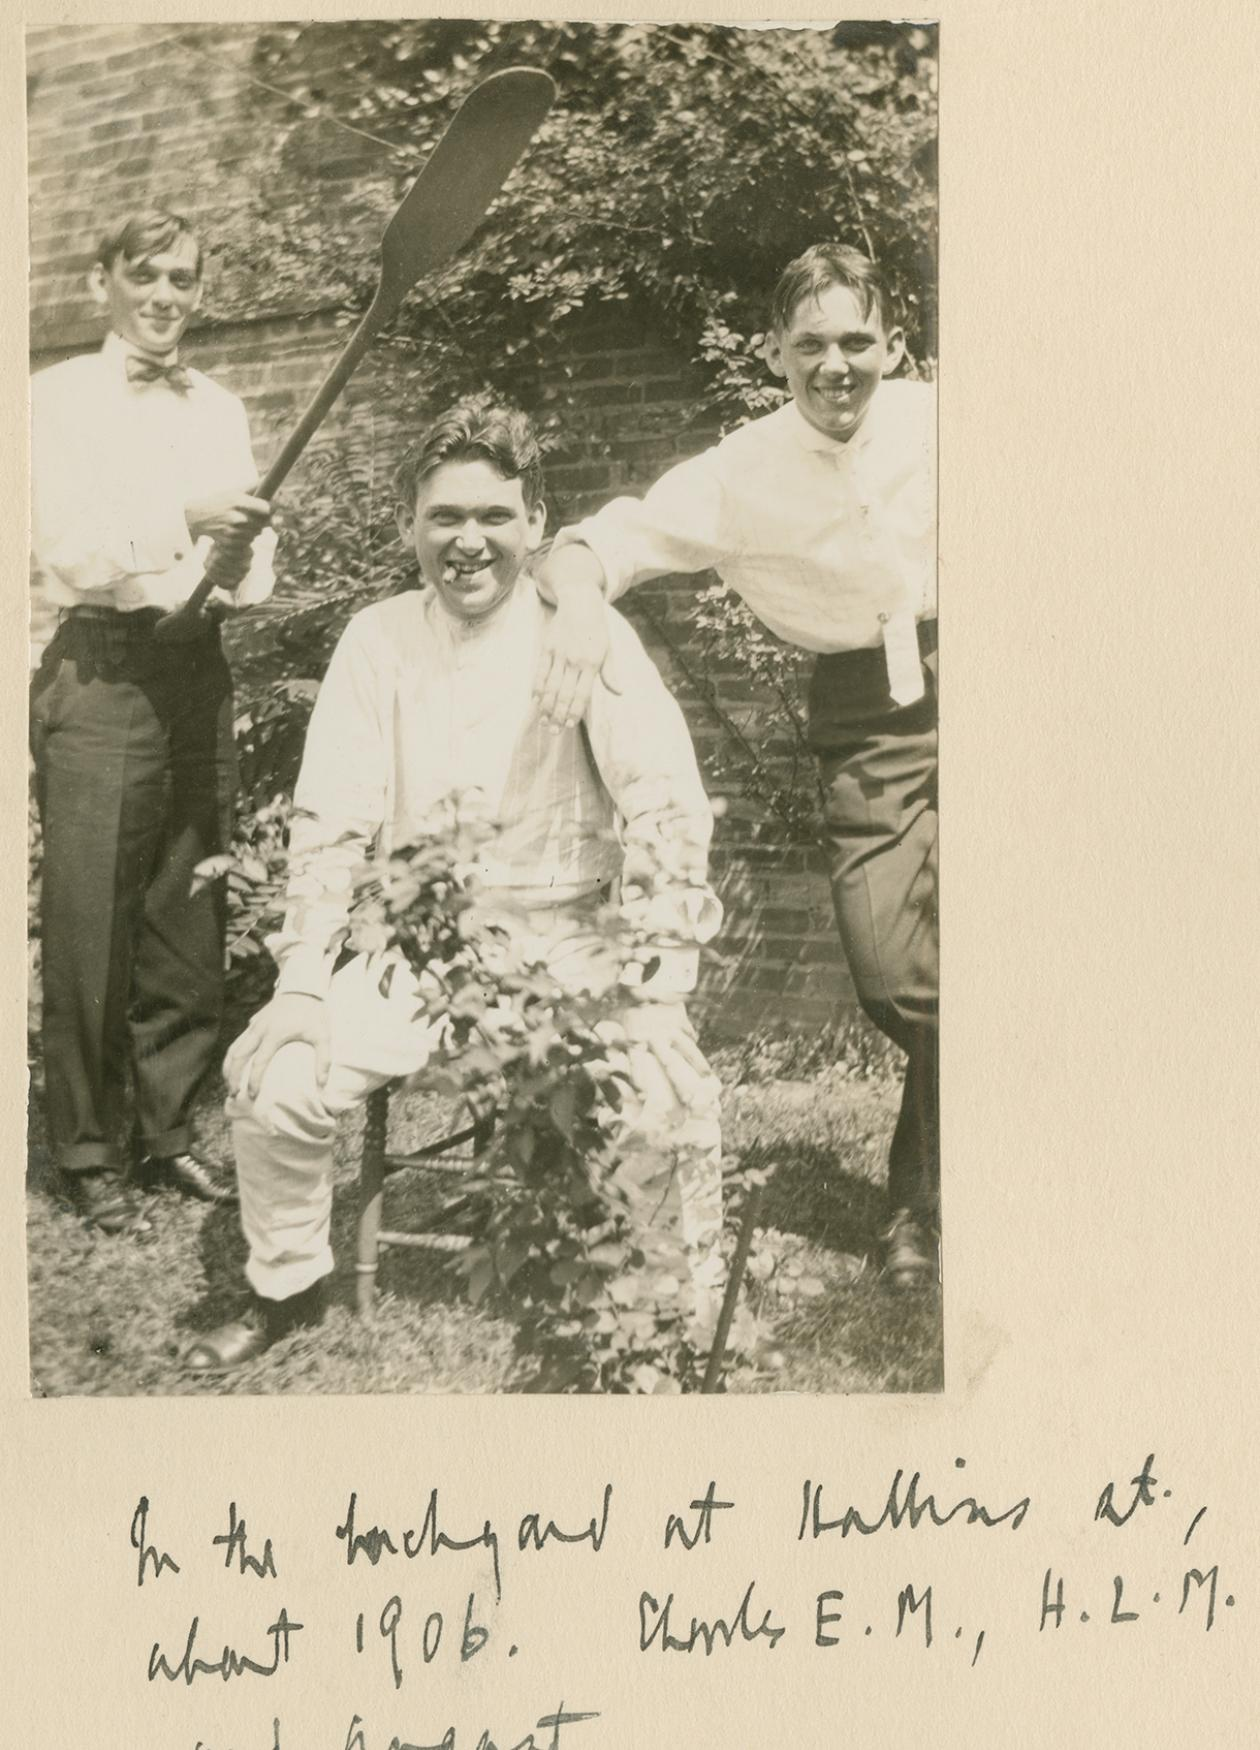 An old photograph of the Mencken brothers in their backyard. One of them is holding an oar over H.L. Mencken's head.